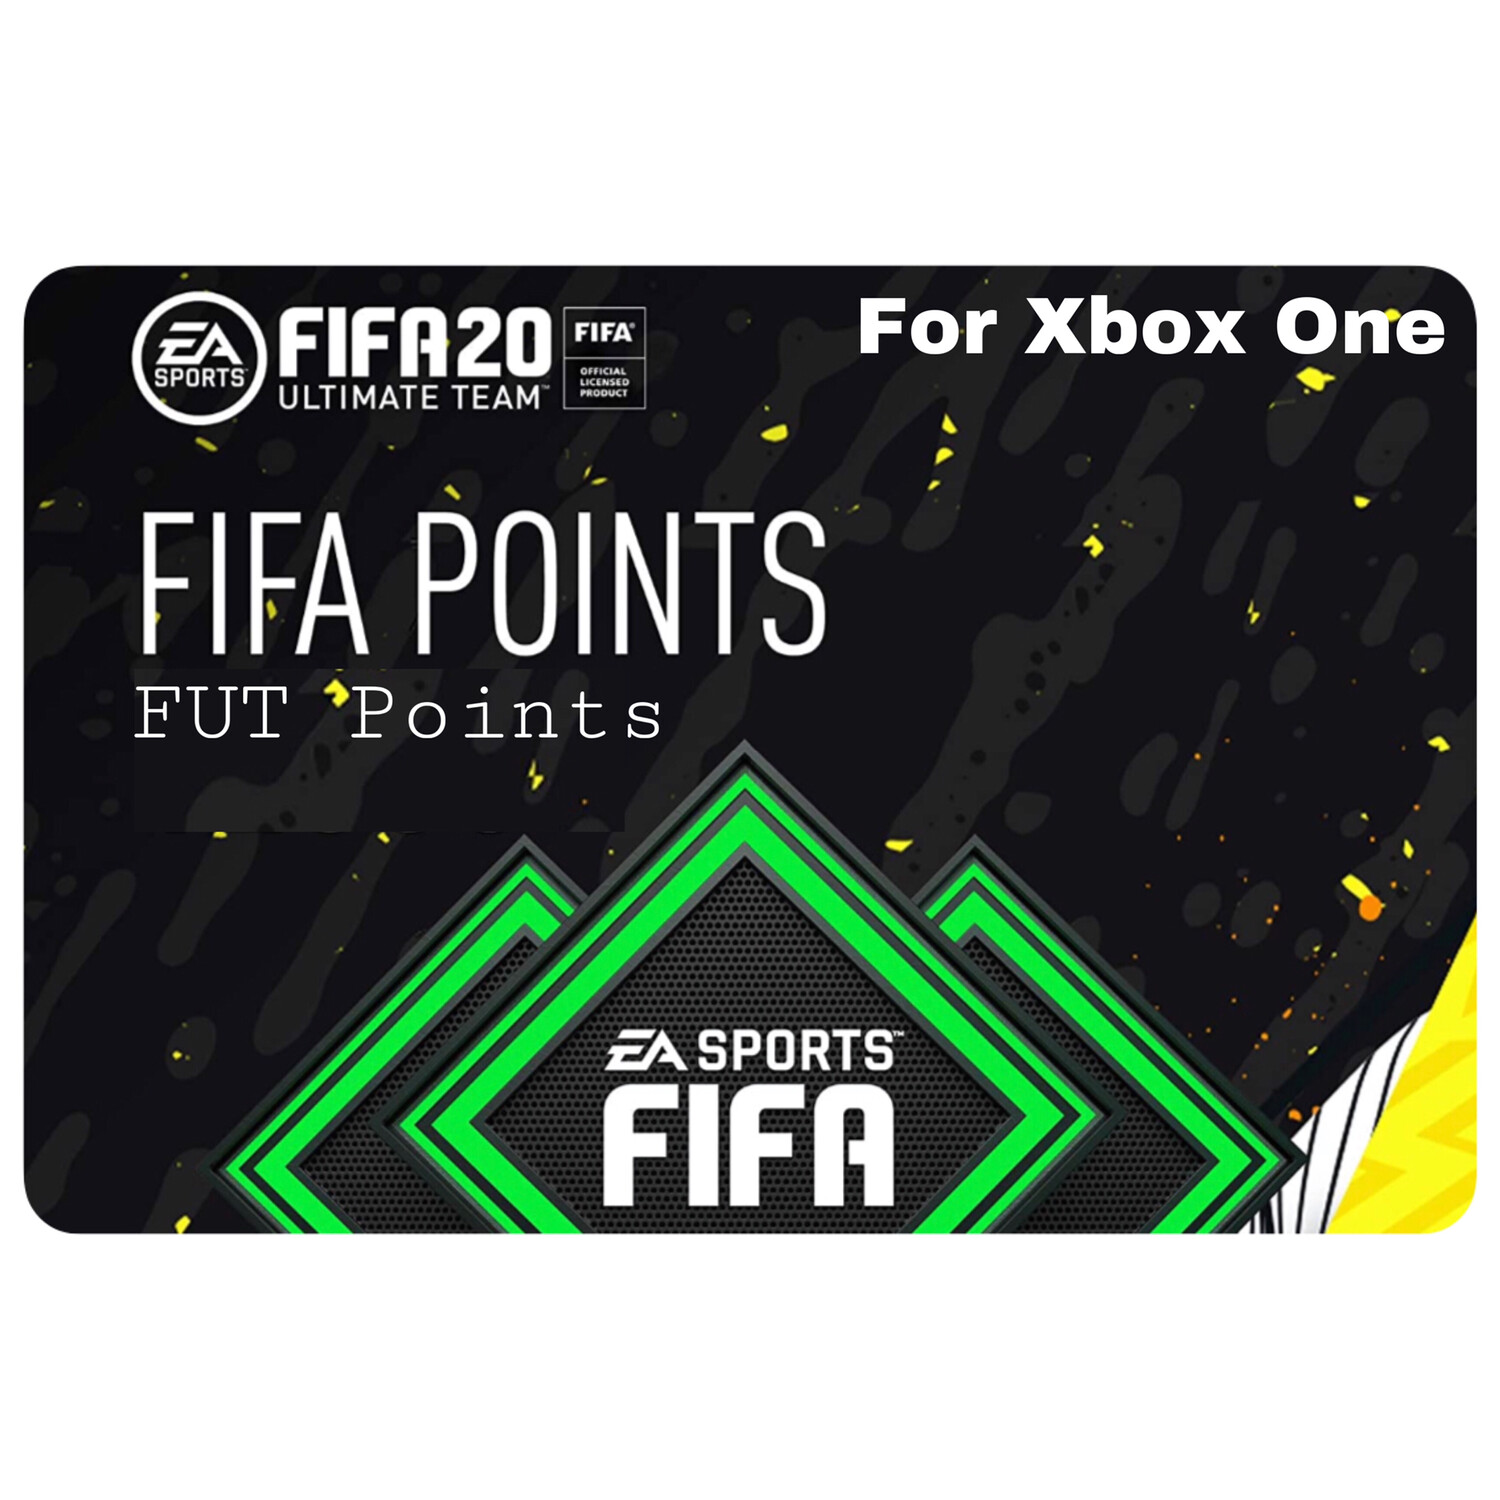 FIFA 20 FUT Points Ultimate Team for Xbox One Region US